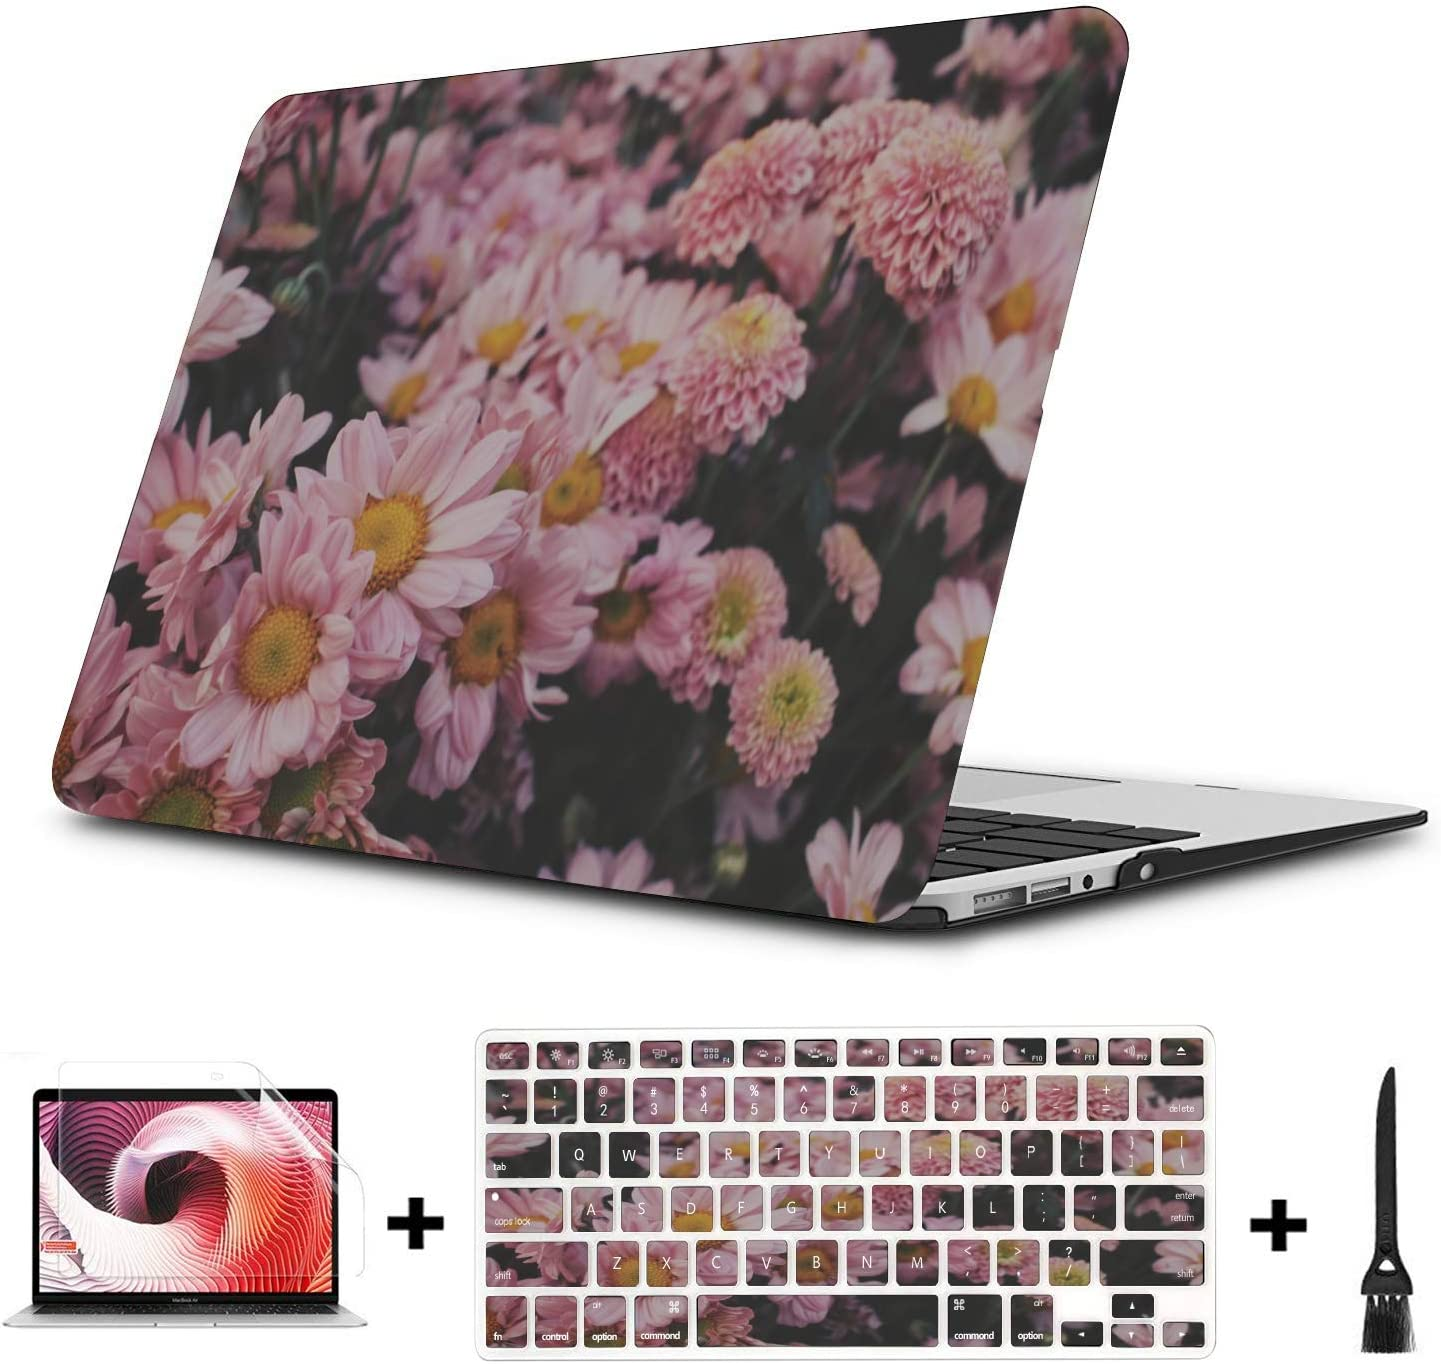 MacBook Pro Laptop Cover Spring Beautiful Pink Flower Fragrant Plastic Hard Shell Compatible Mac Air 11 Pro 13 15 Mackbook Pro Case Protection for MacBook 2016-2019 Version